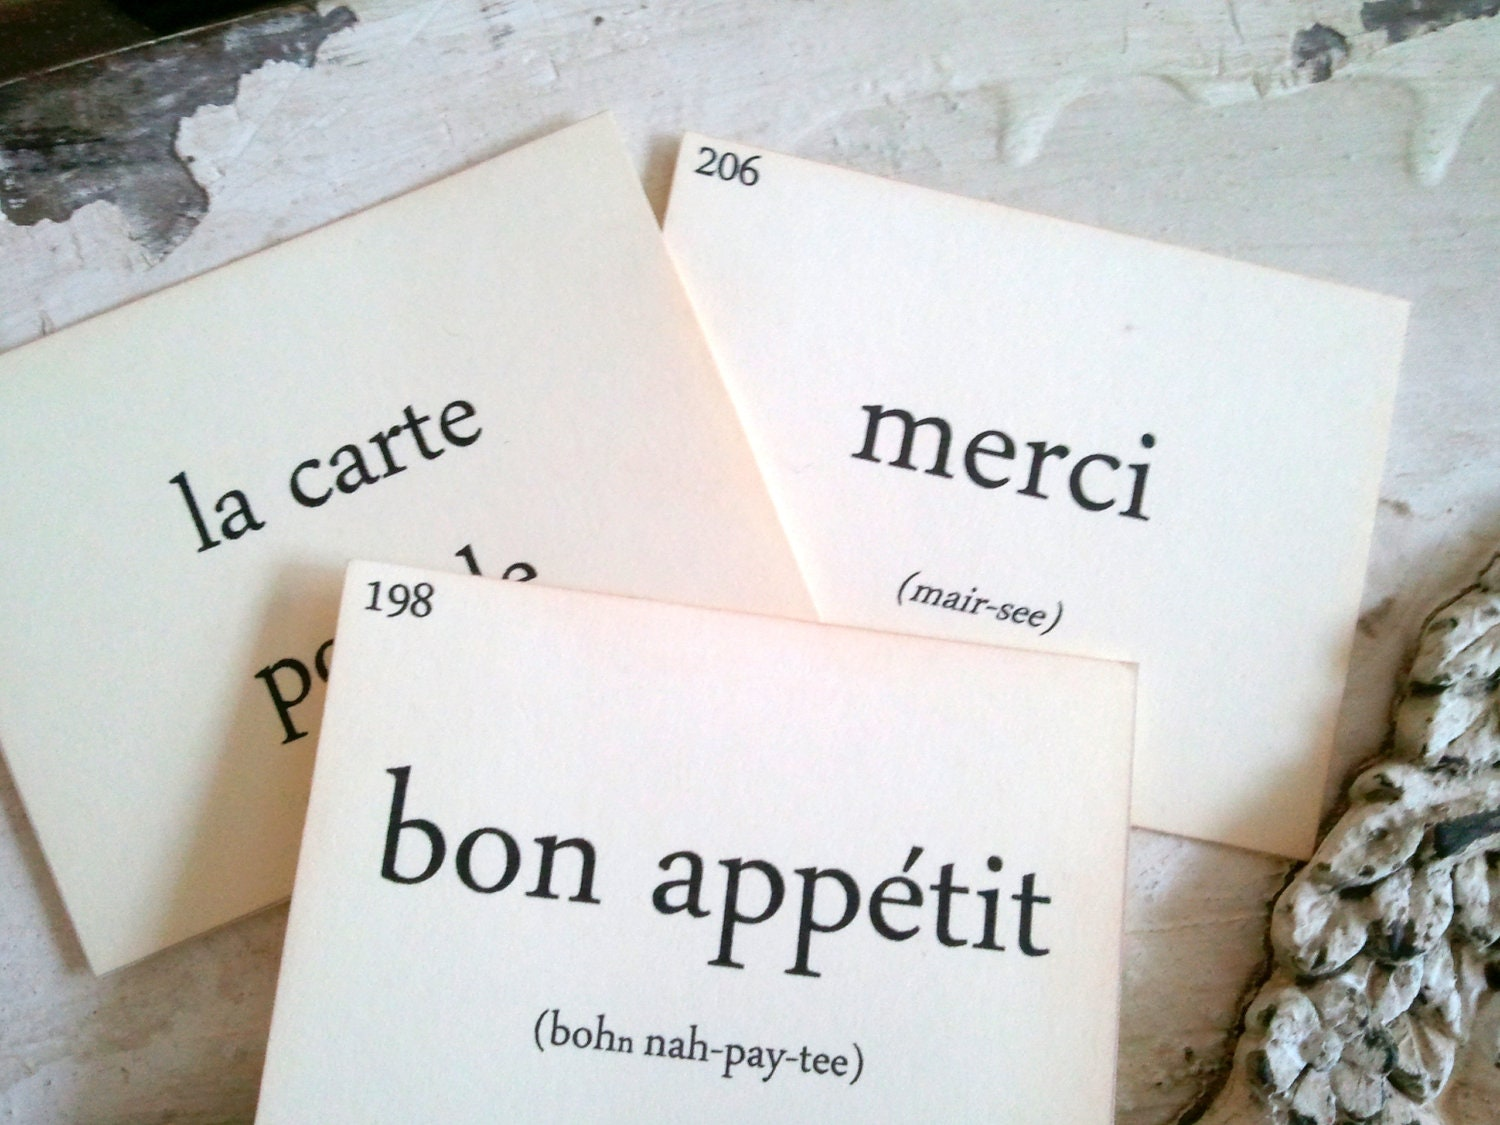 French Flashcards, French Words, French Home Decor, Scrapbooking, Small Embellishment, Set of 12 - 33PaperLane